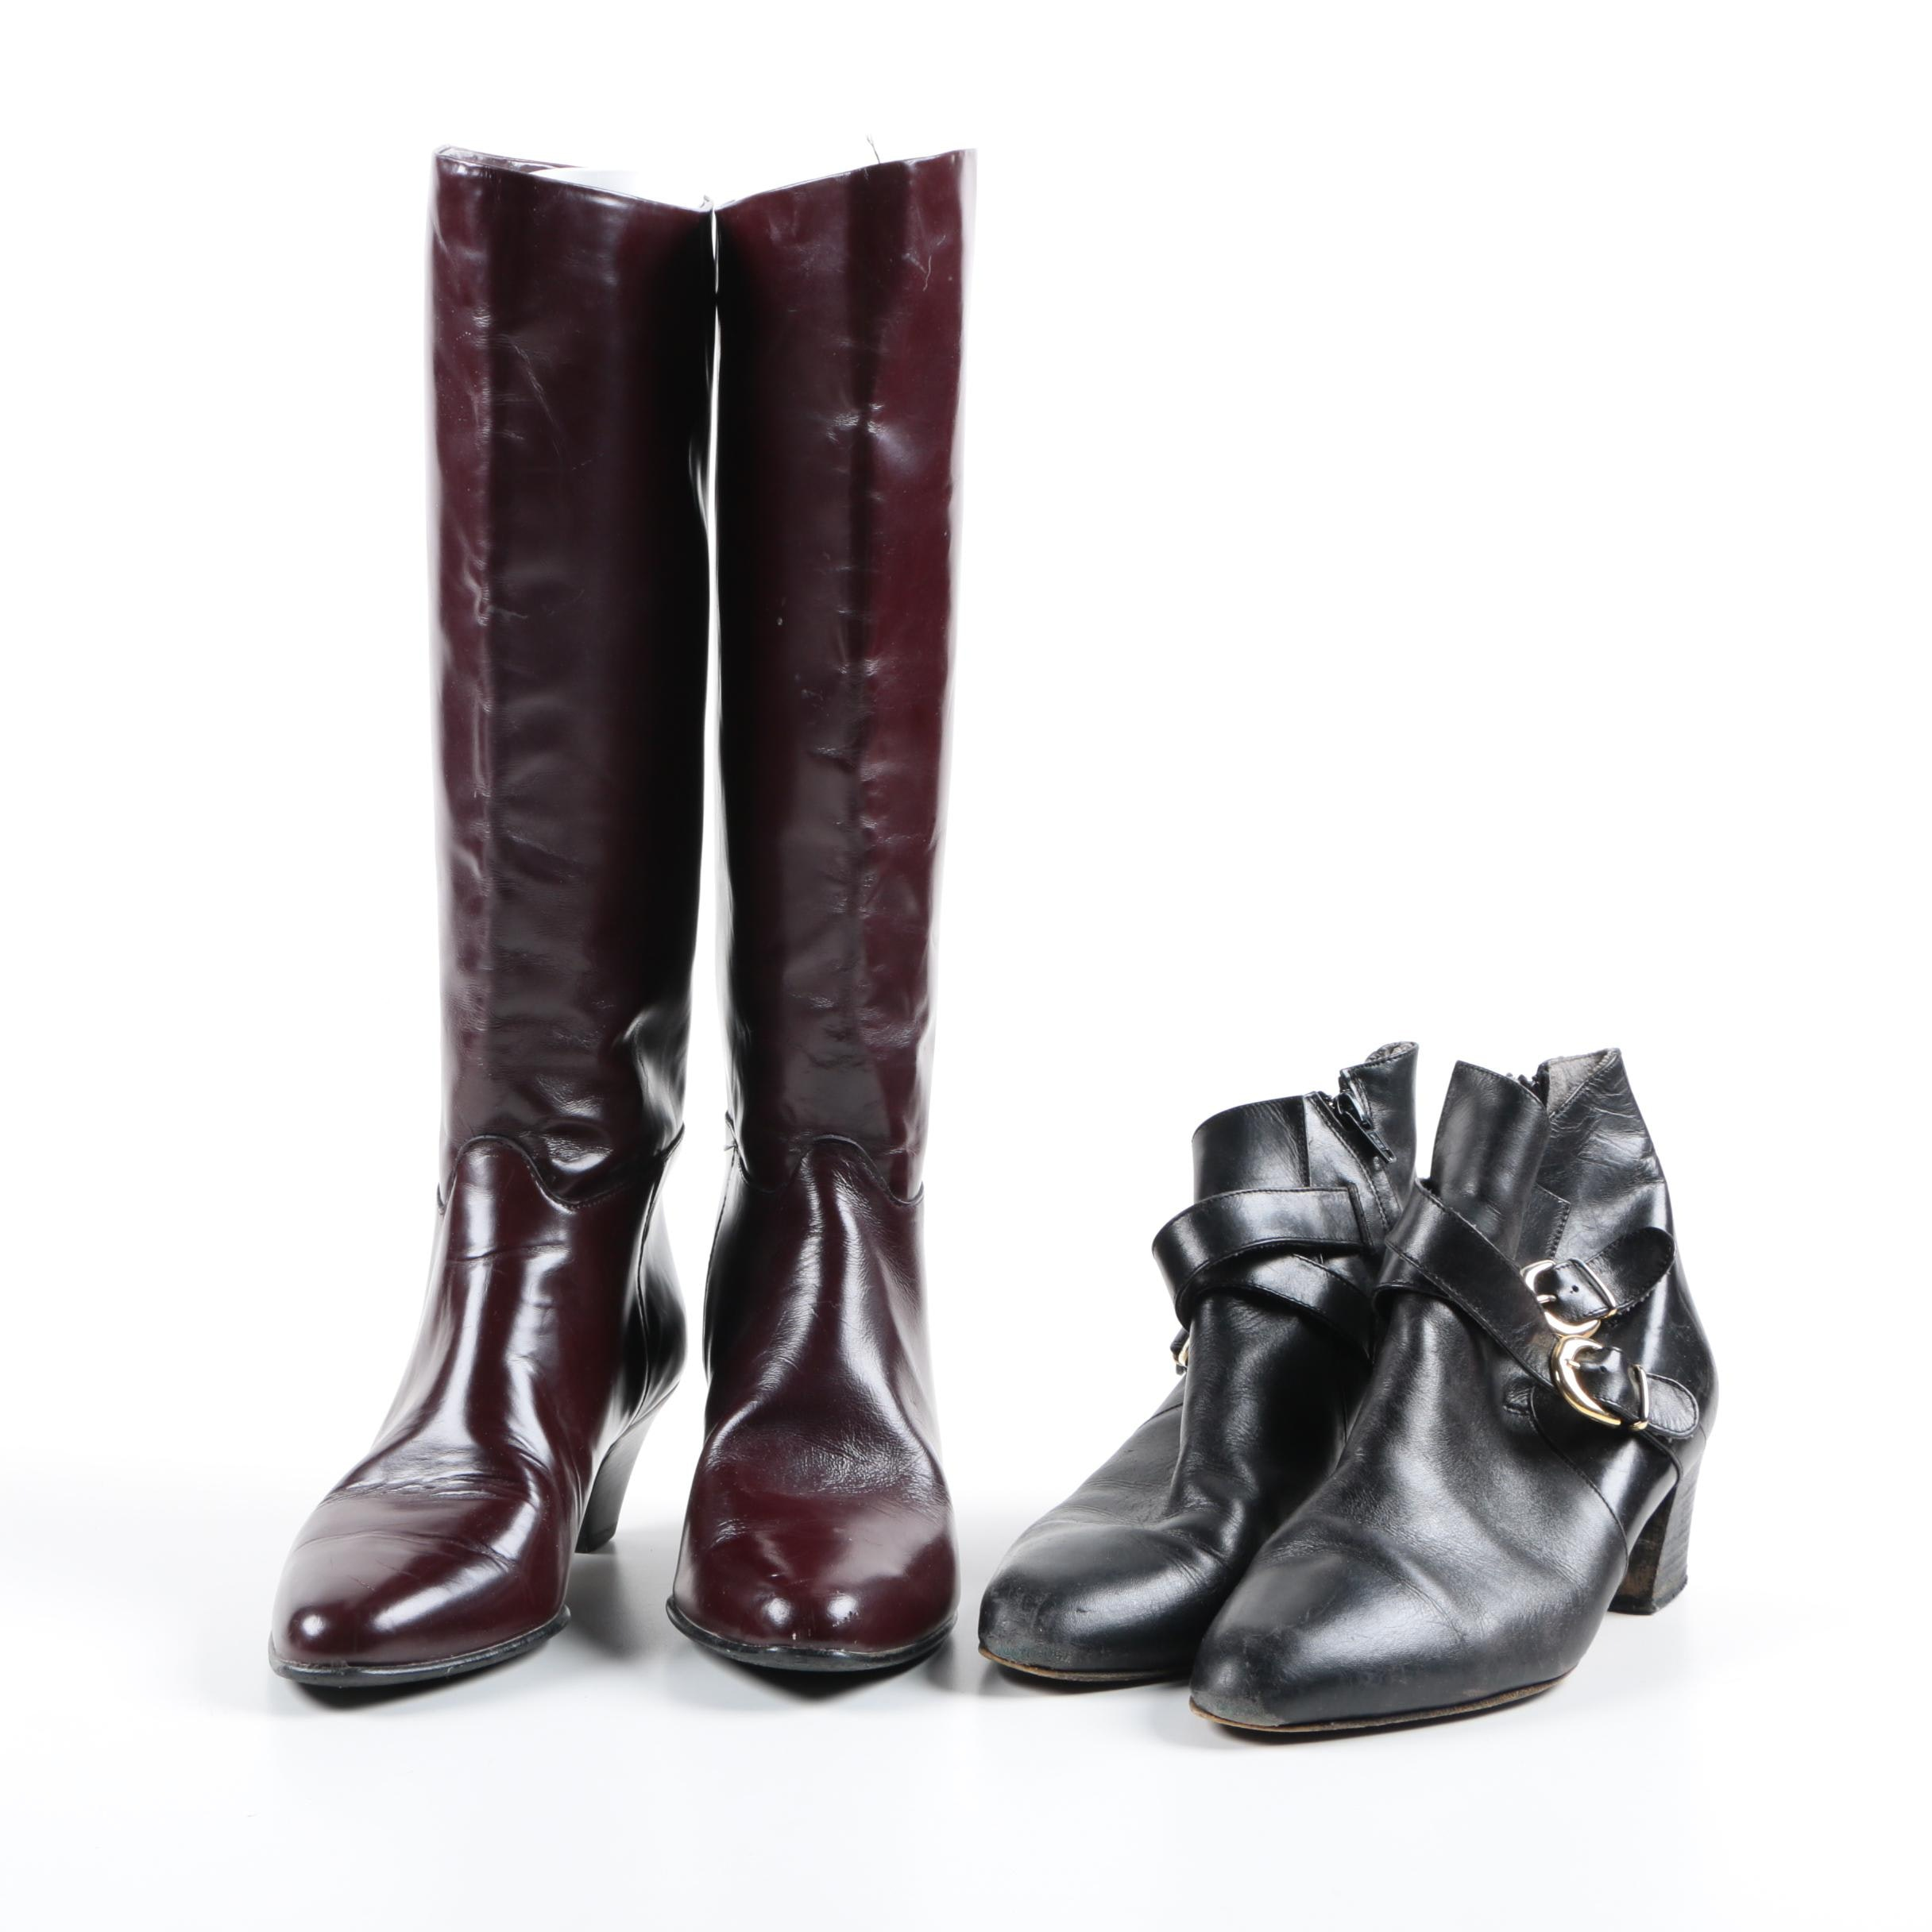 Women's Leather Boots Including Charles David